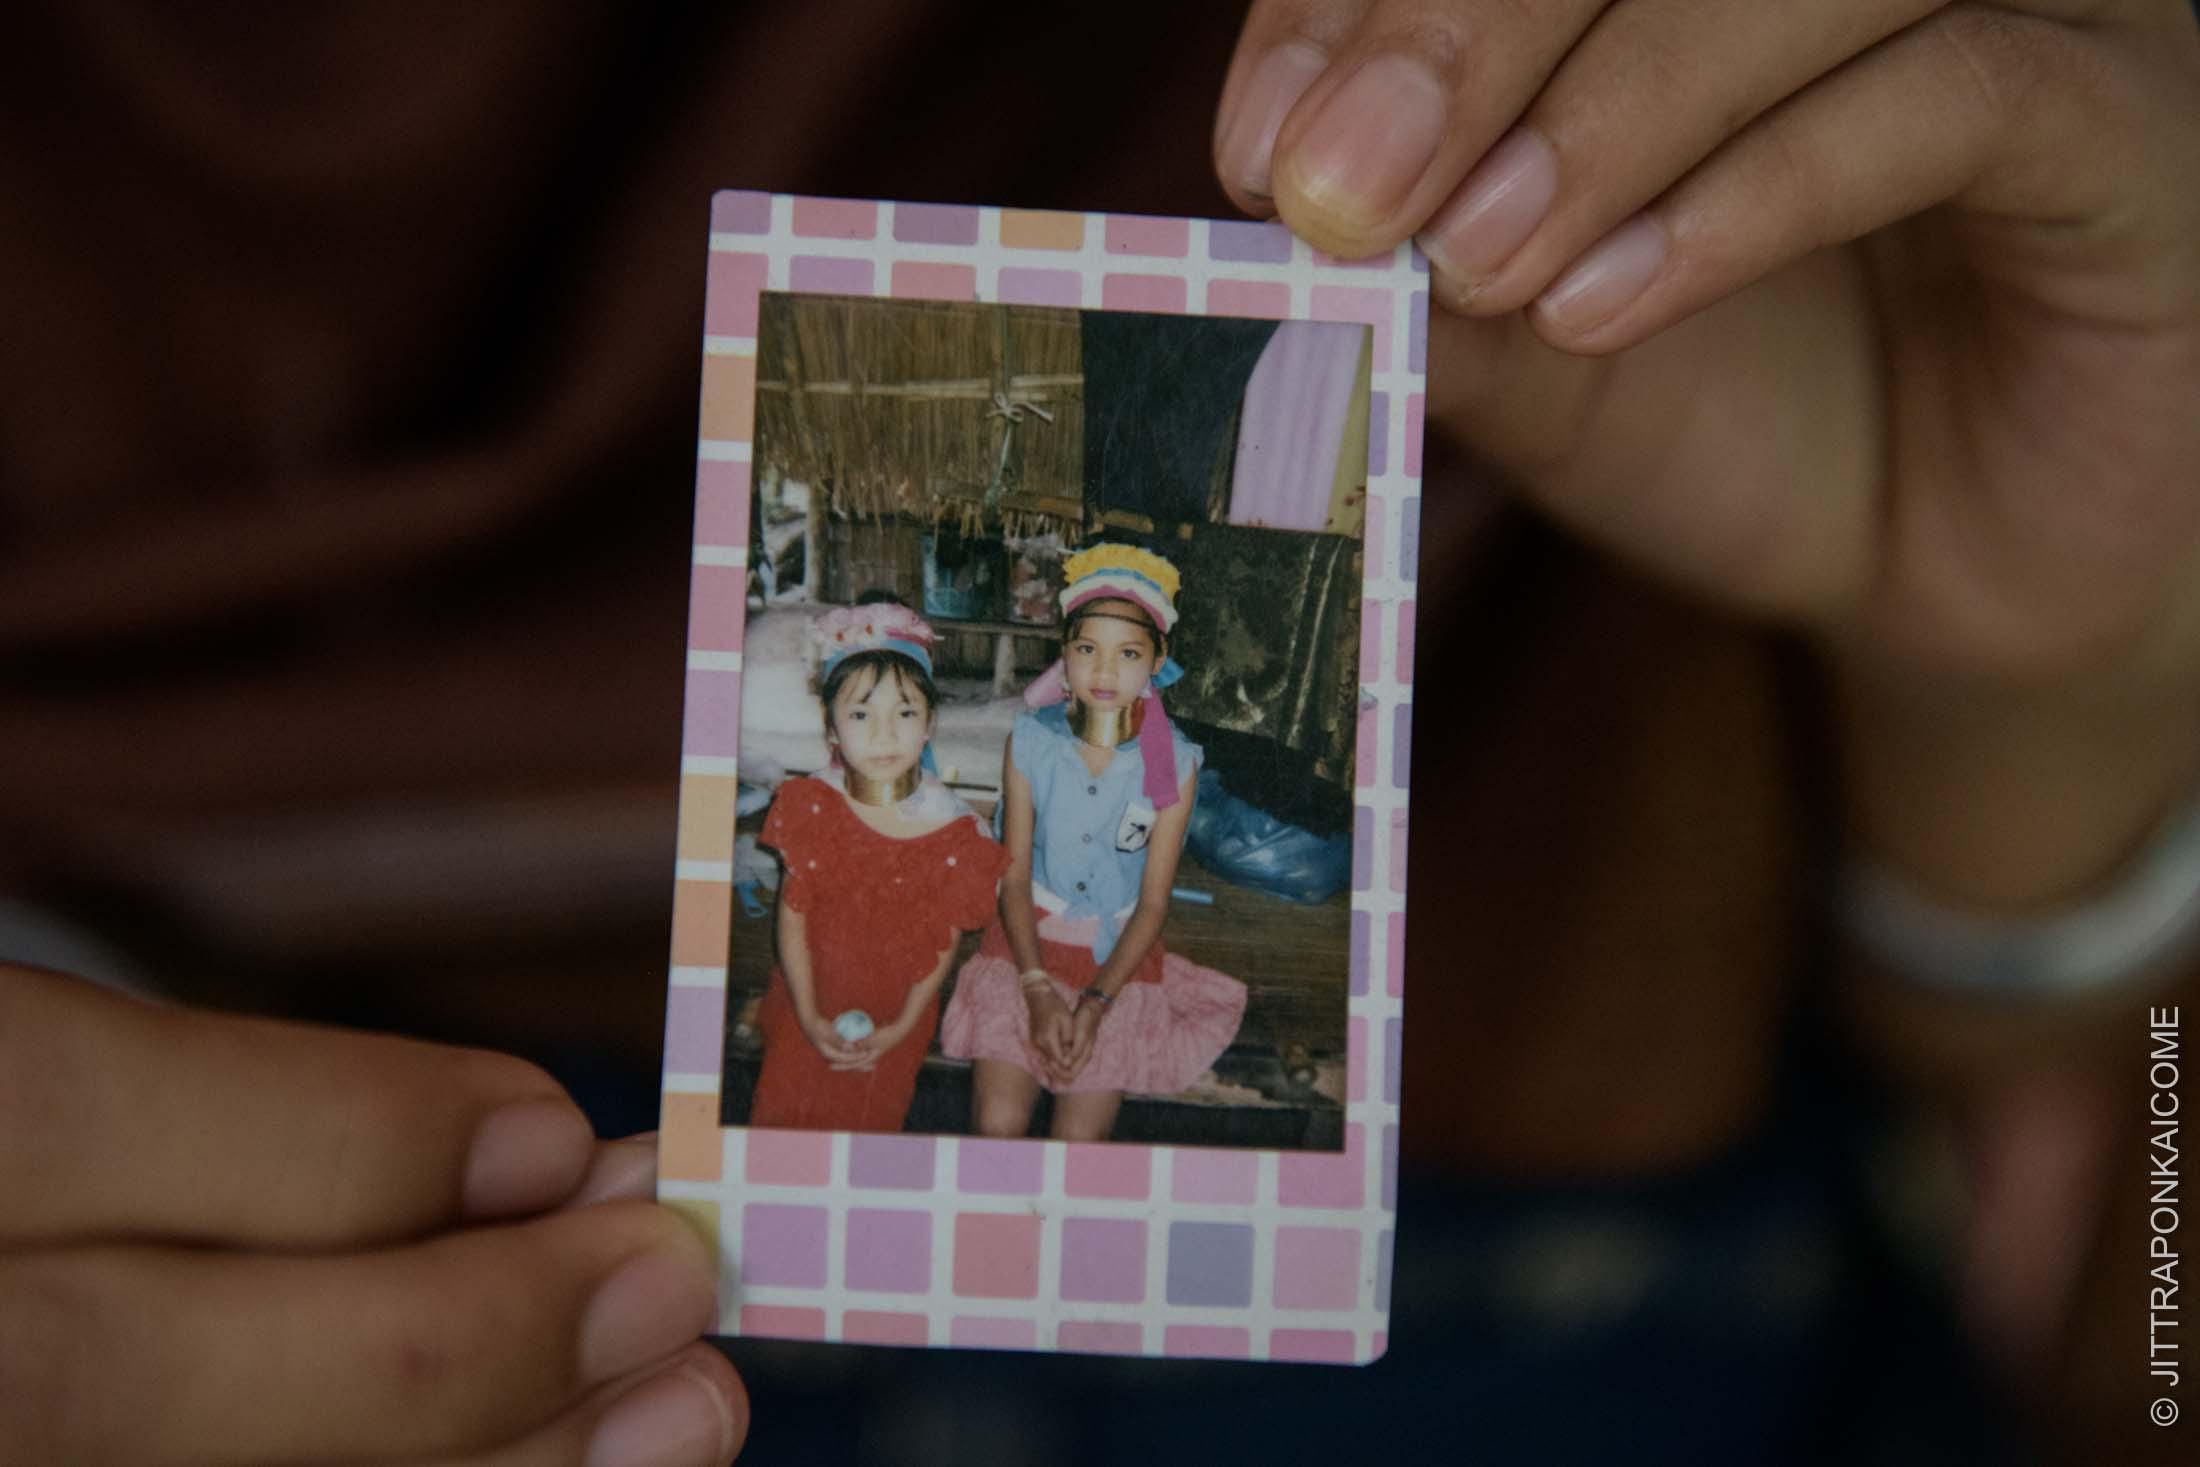 Arathai shows a picture taken 5 years ago with her friend on the left, Ma Prai on the year she moved from Karenni state to join the tourism industry in Chiang Mai. She was 14 years old when the COVID-19 hit the kingdom forced her Ma Prai to move back to her homeland - Arathai said she missed her.